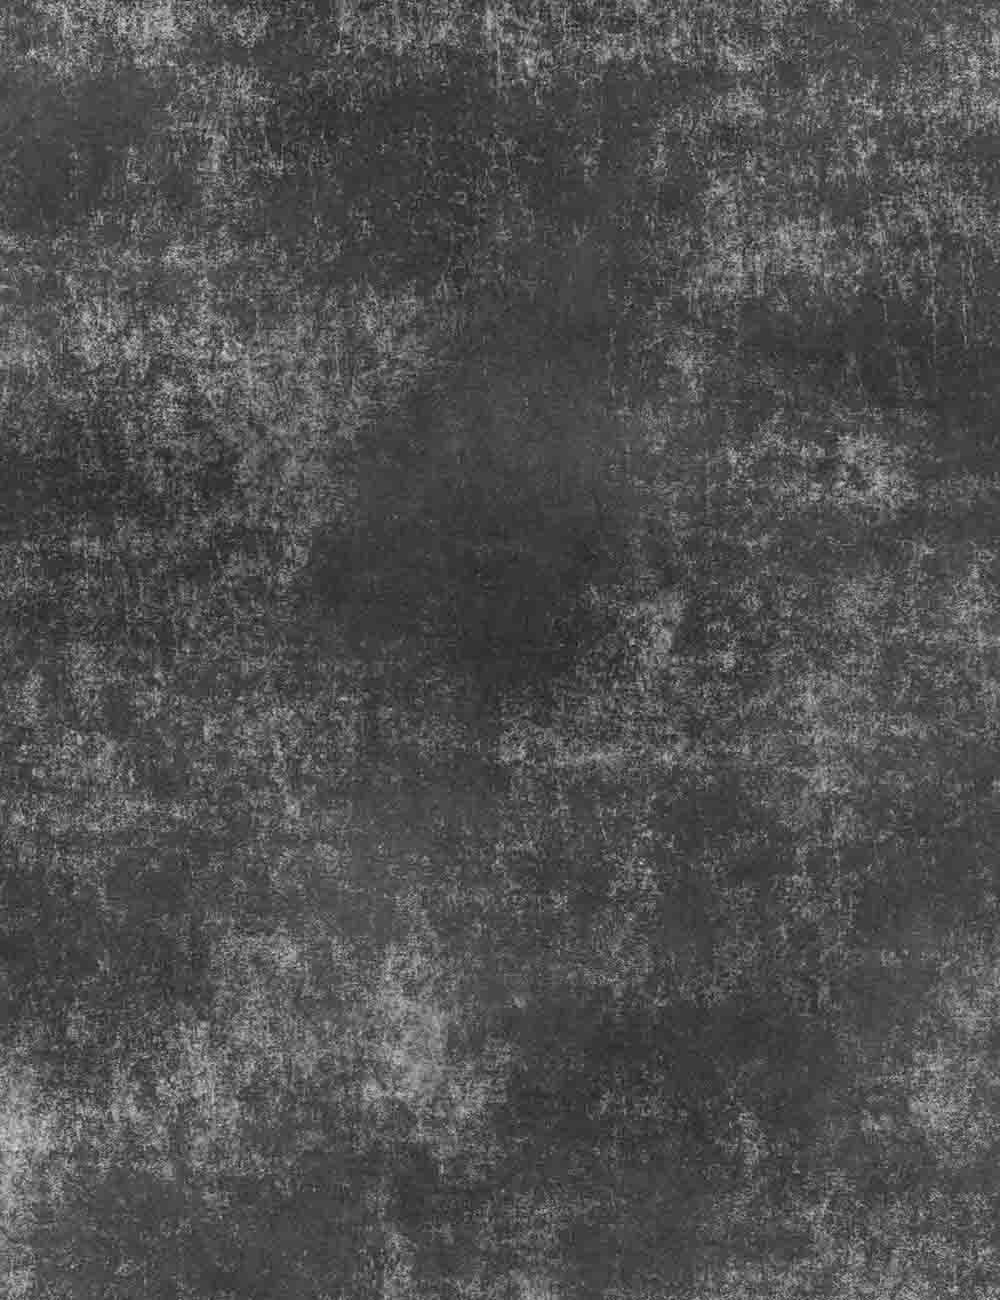 Retro Abstract Gary Background With Smoke White Texture  For Studio Photo